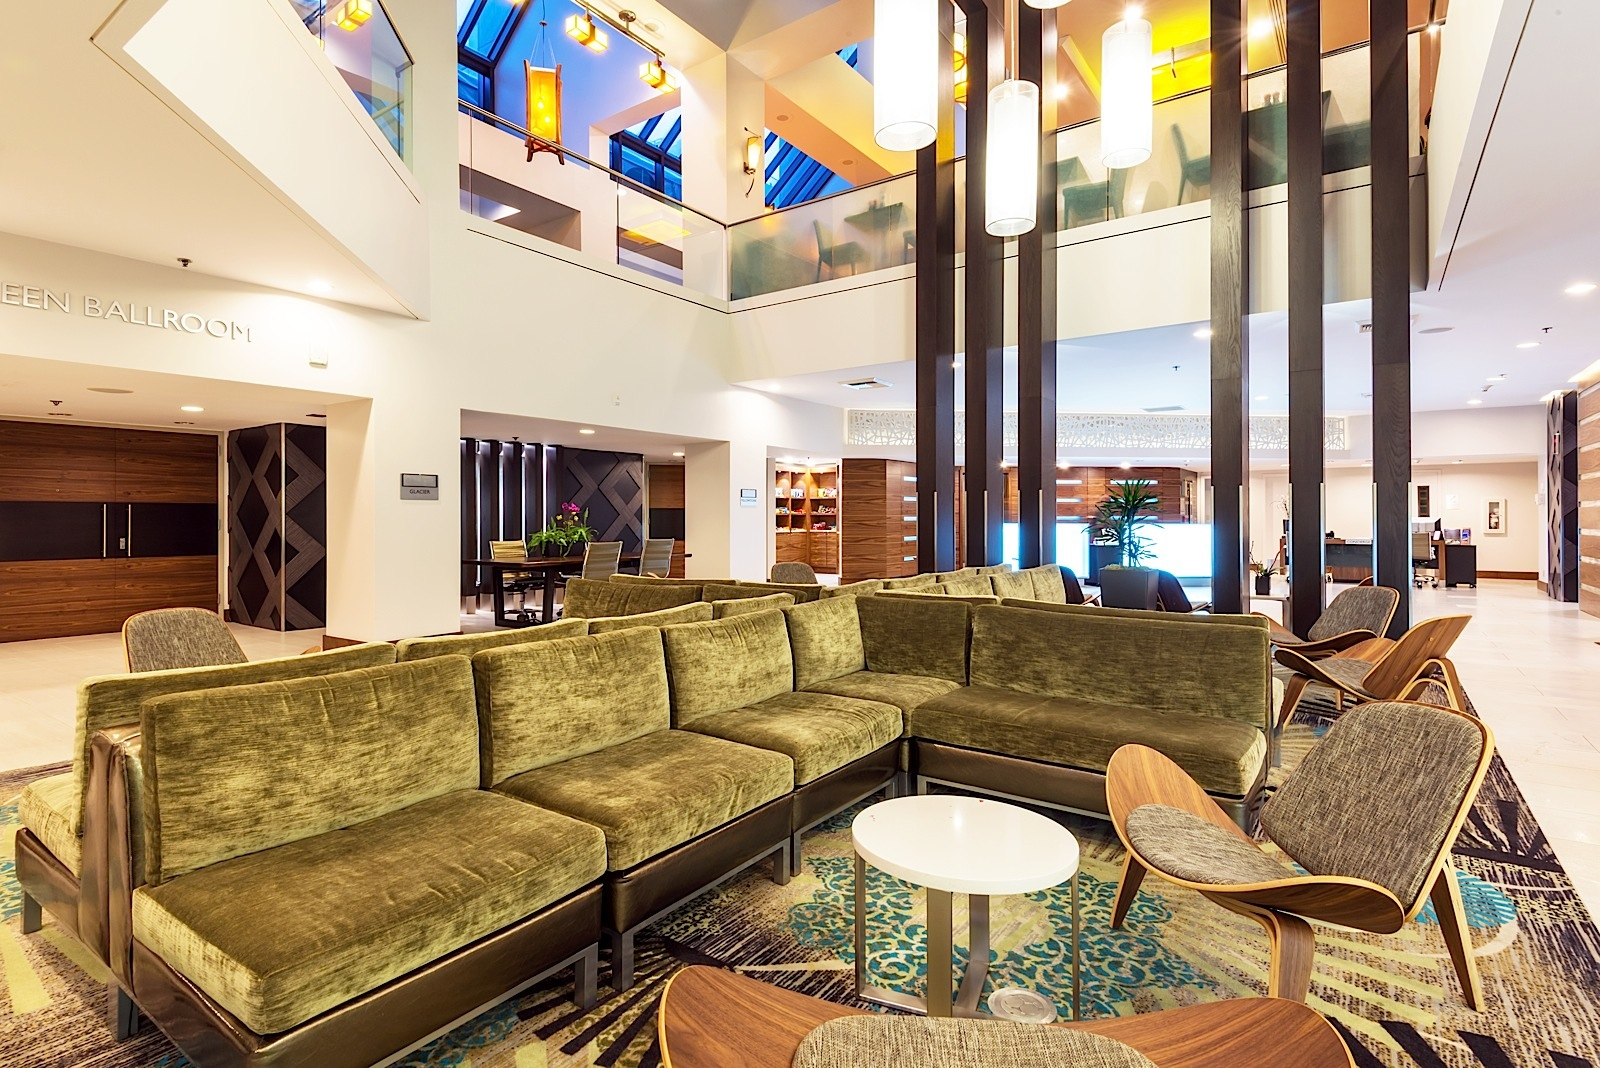 Lobby of the Crowne Plaza Hotel in Seattle